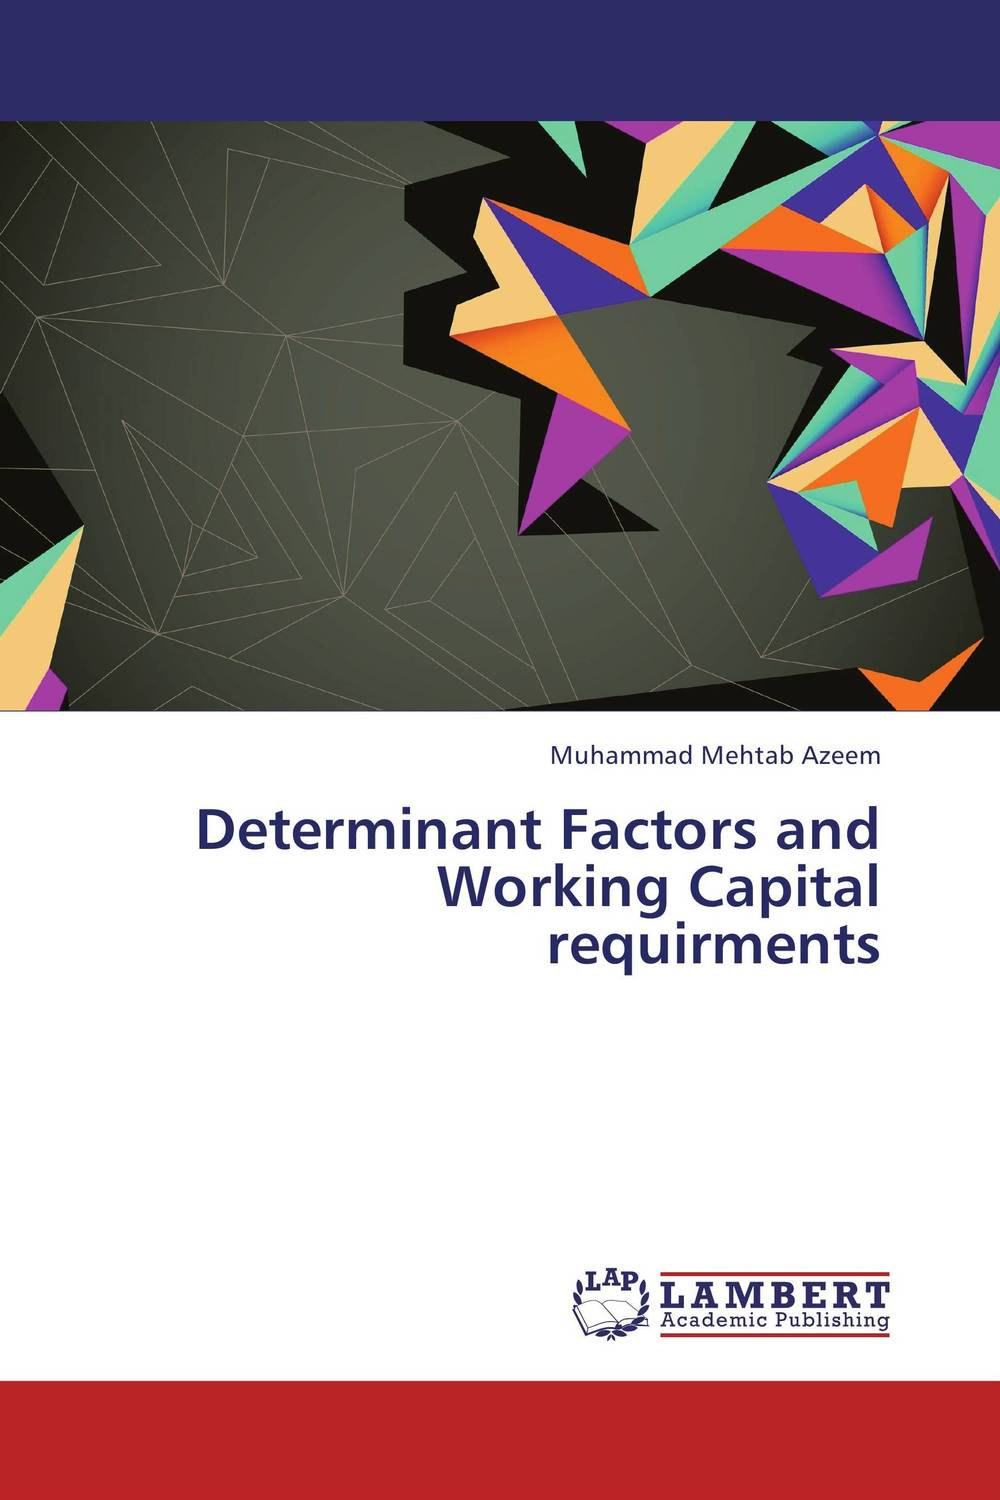 Determinant Factors and Working Capital requirments james sagner working capital management applications and case studies